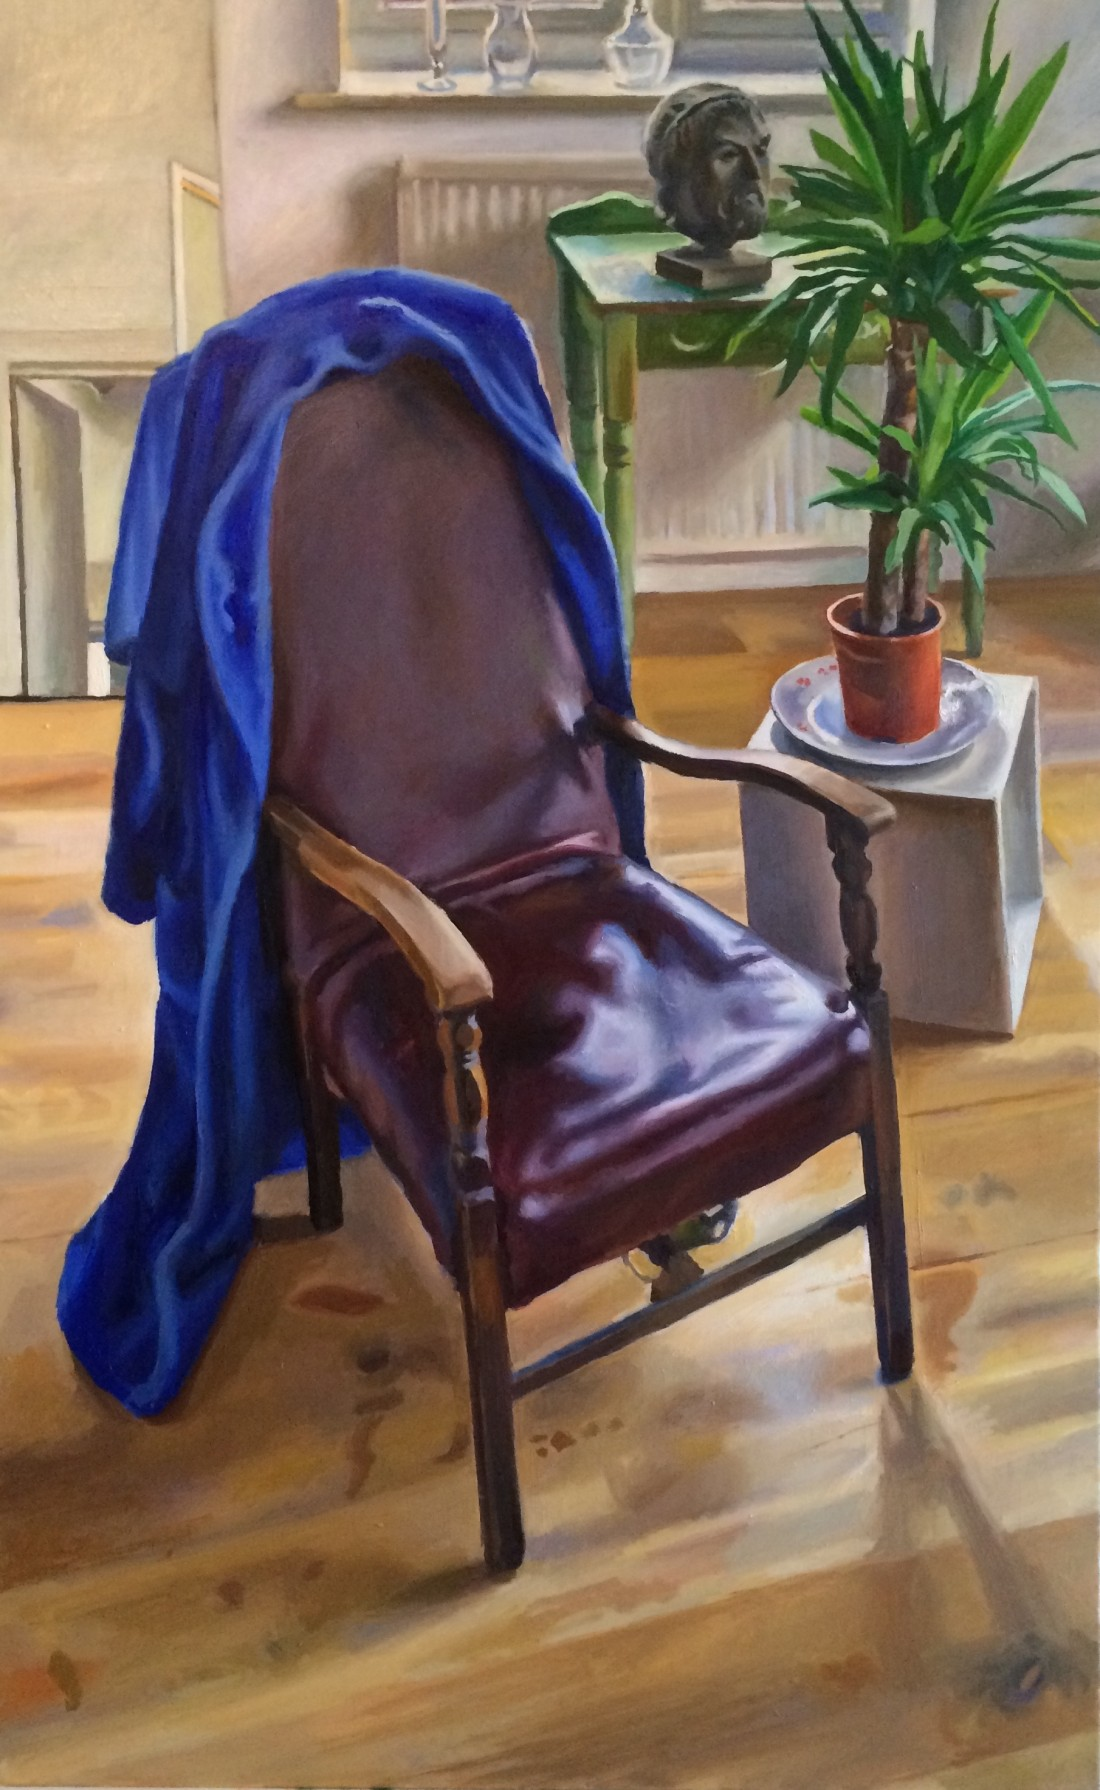 Still life with chair and a blue dressing-gown.